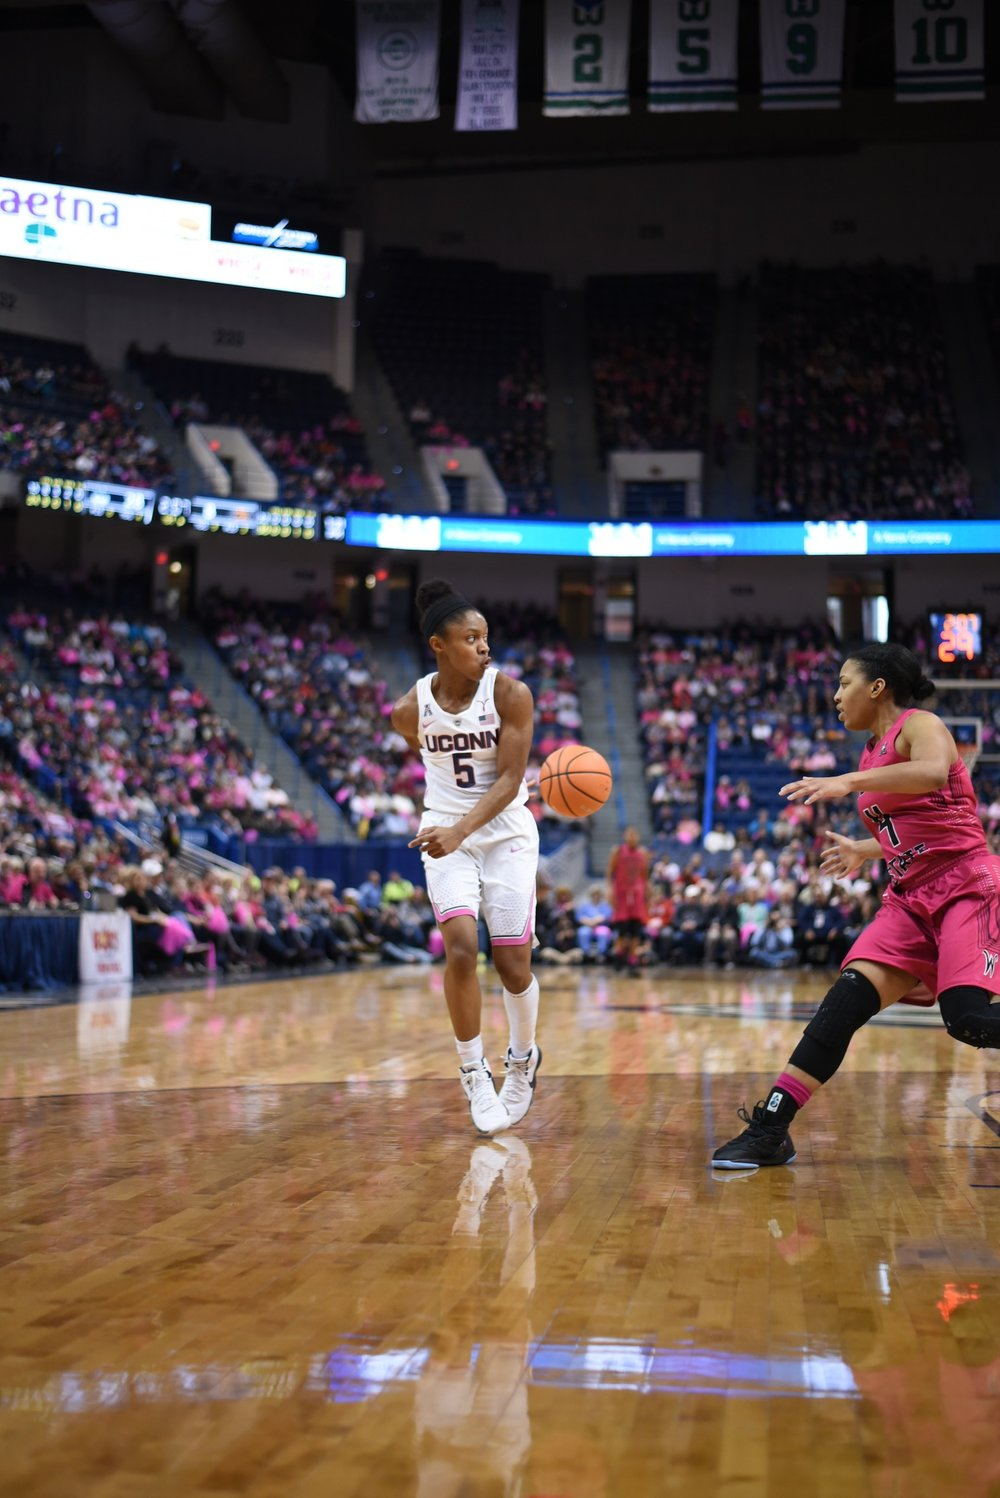 UConn point guard Crystal Dangerfield makes a behind-the-back pass on the fastbreak in the Huskies' 124-43 win over the Wichita State Shockers on Saturday, Feb. 10, 2018 at the XL Center in Hartford, Connecticut. (Photo by Charlotte Lao, Associate Photo Editor/The Daily Campus)